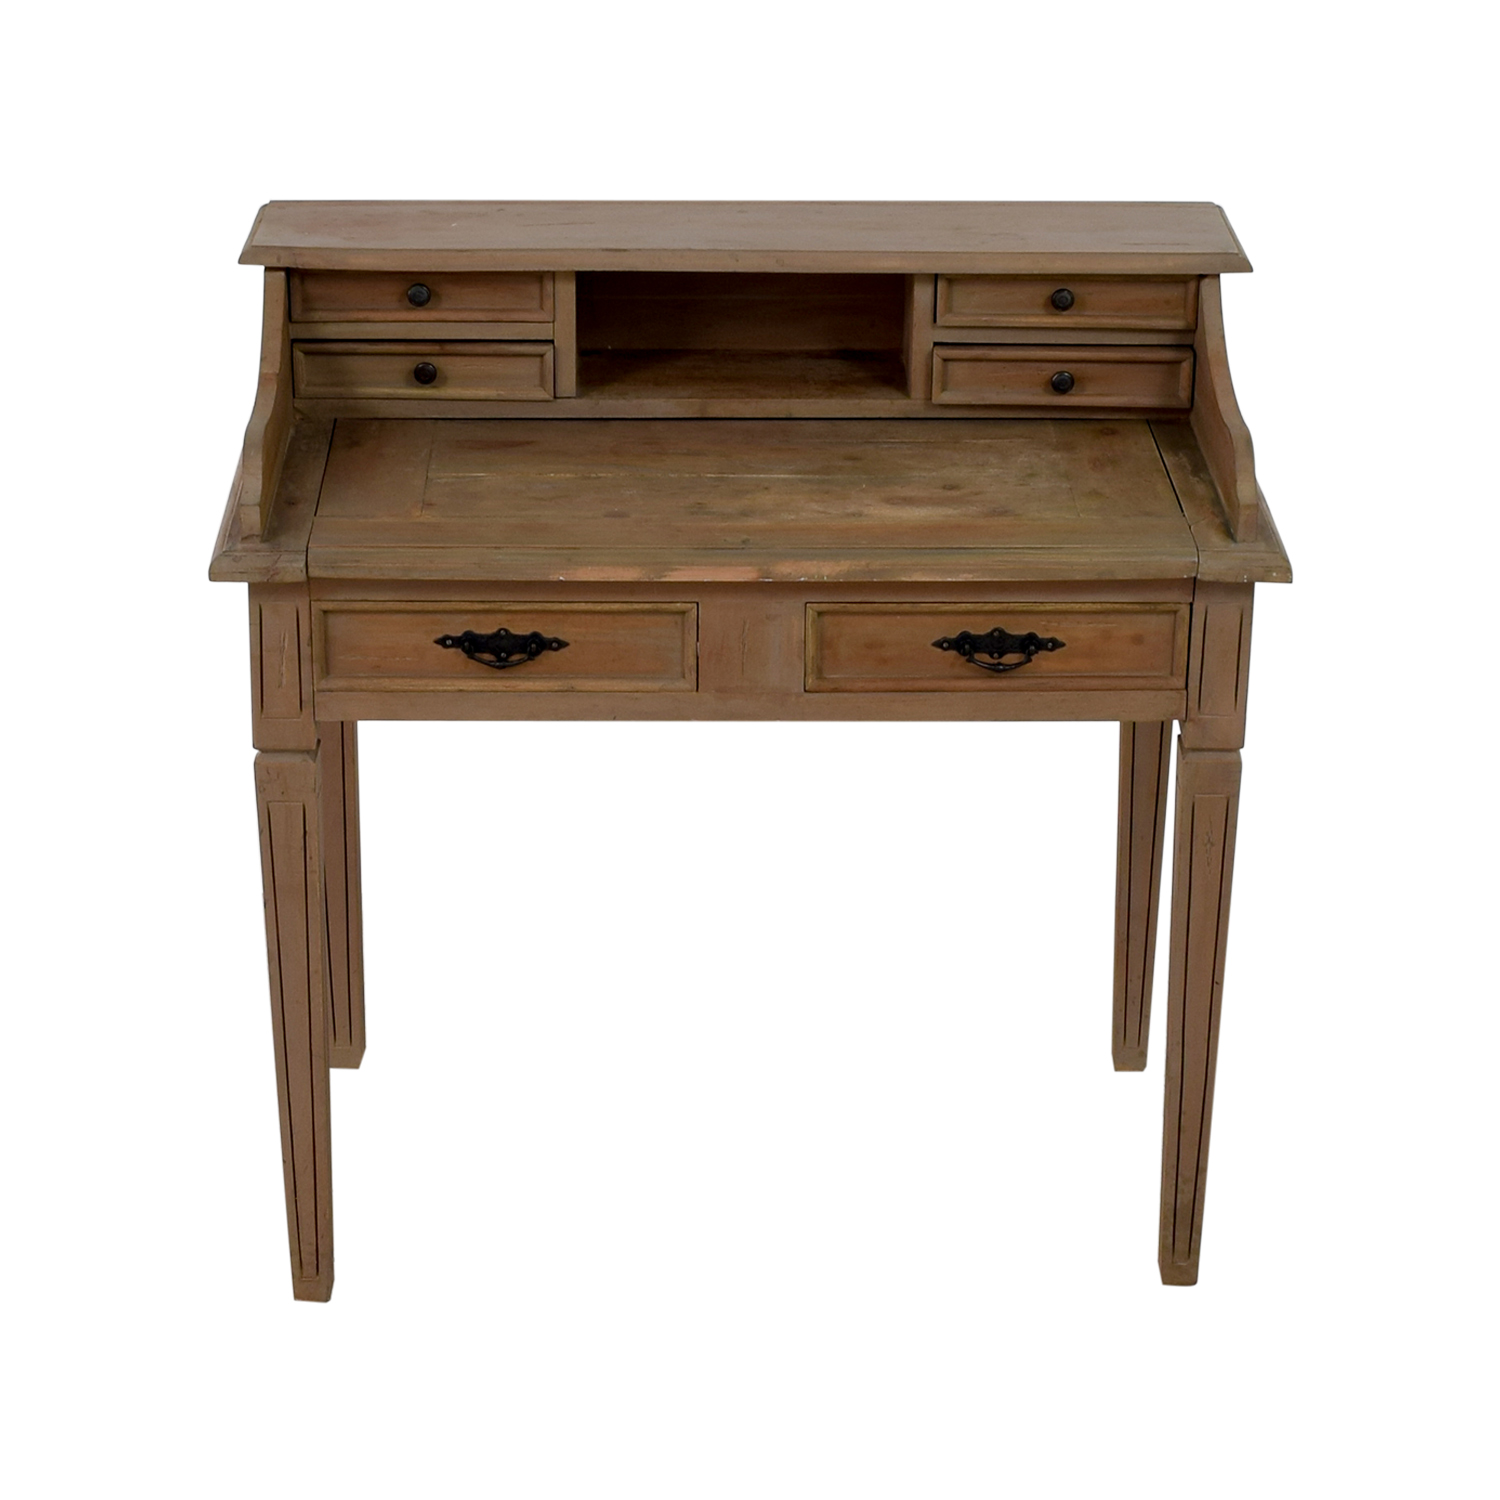 https://images.furnishare.com/25195/unknwon/tables/home-office-desks/wooden-desk-with-small-hutch-used.jpeg